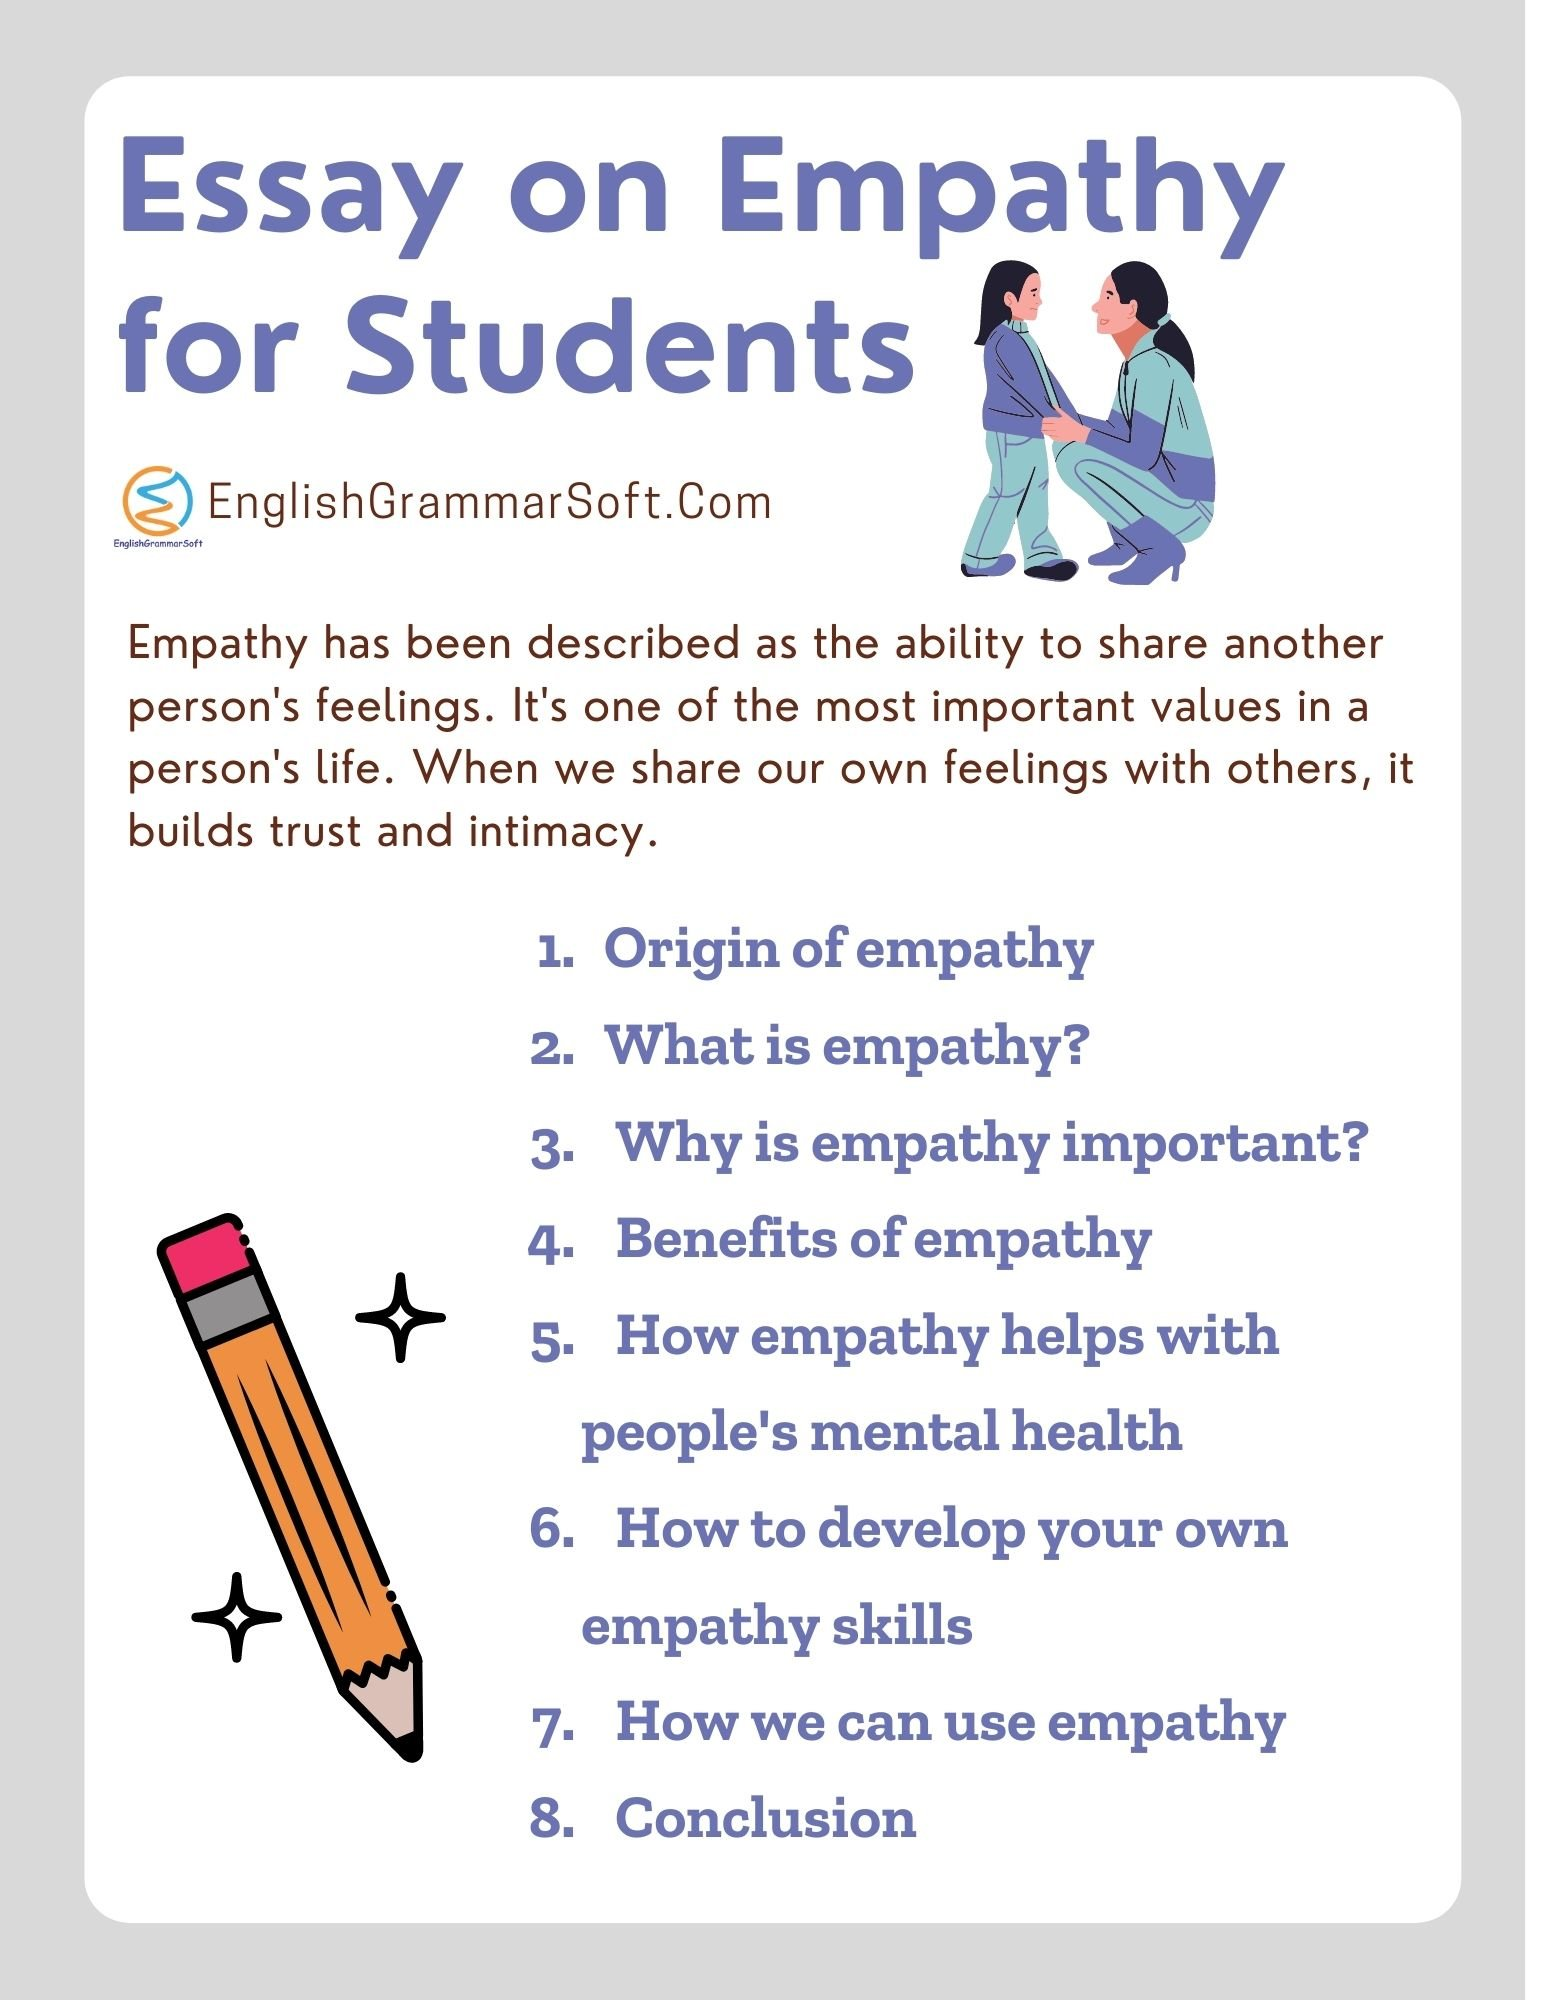 Essay on Empathy for Students